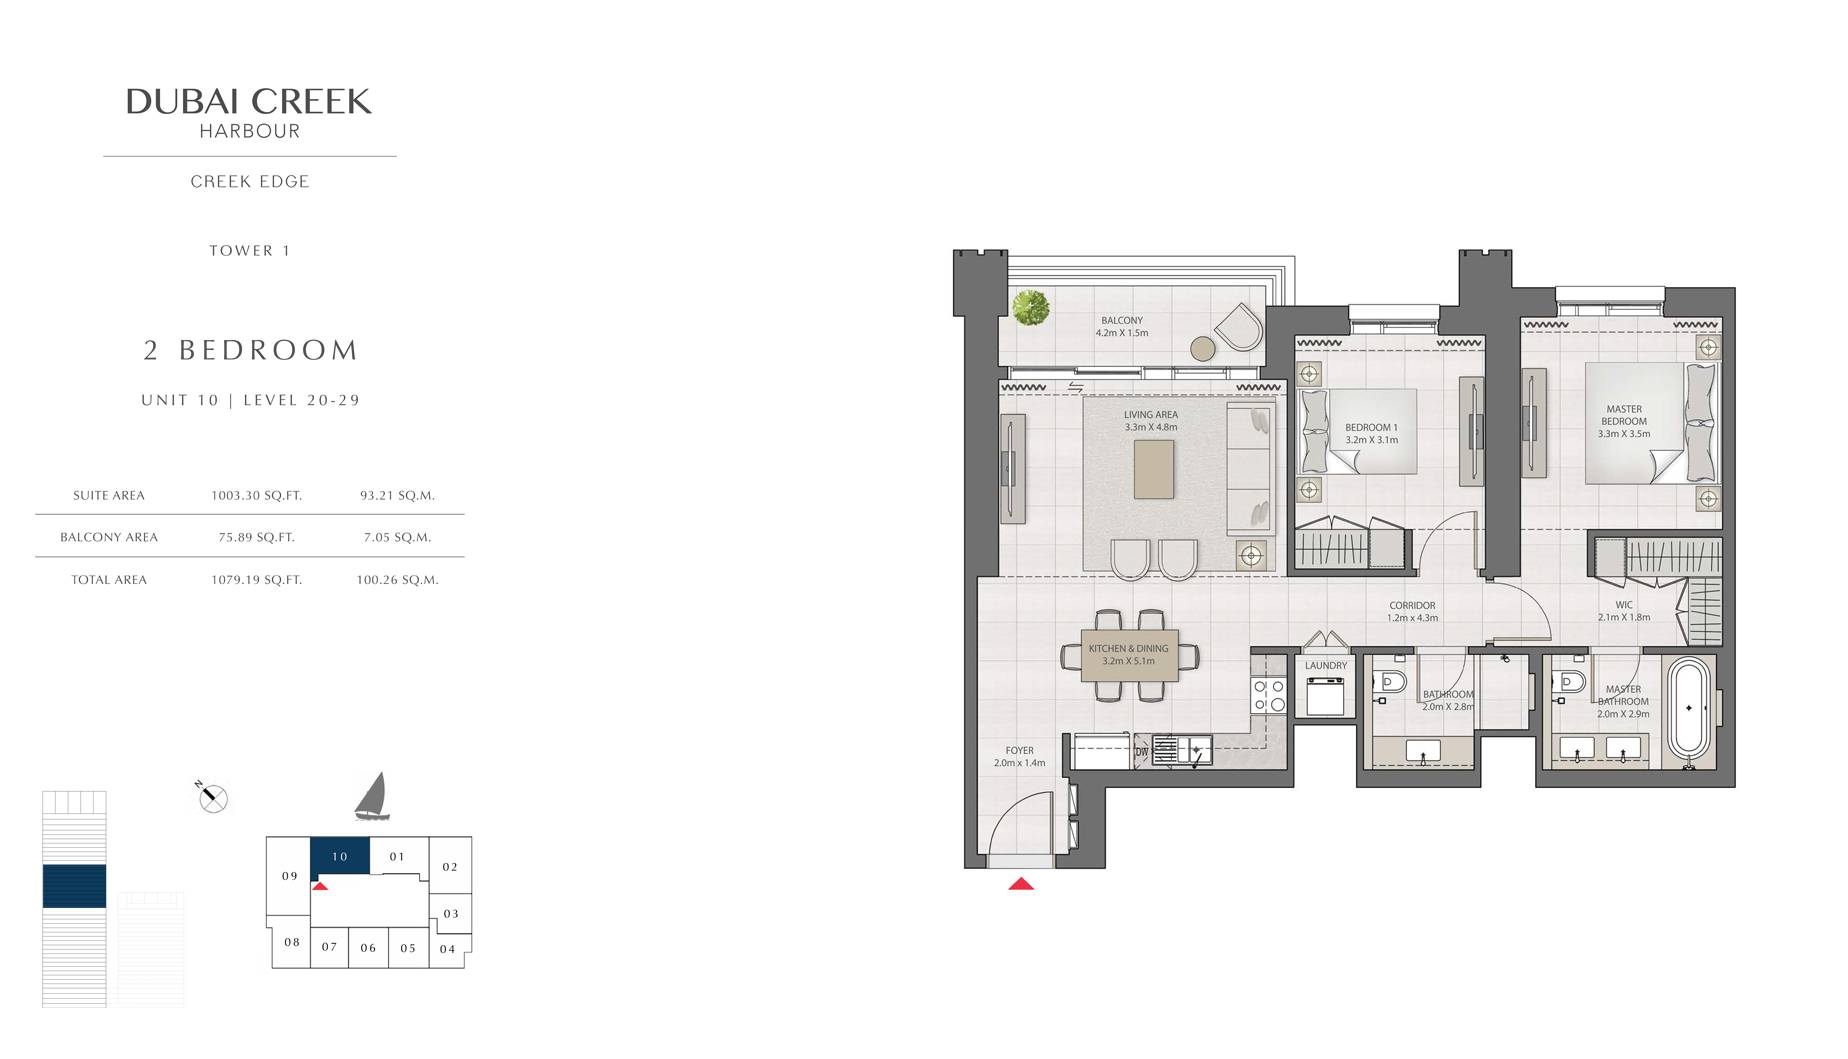 2 Bedroom Tower 1 Unit 10 Level 20-29 Size 1079 sq.ft